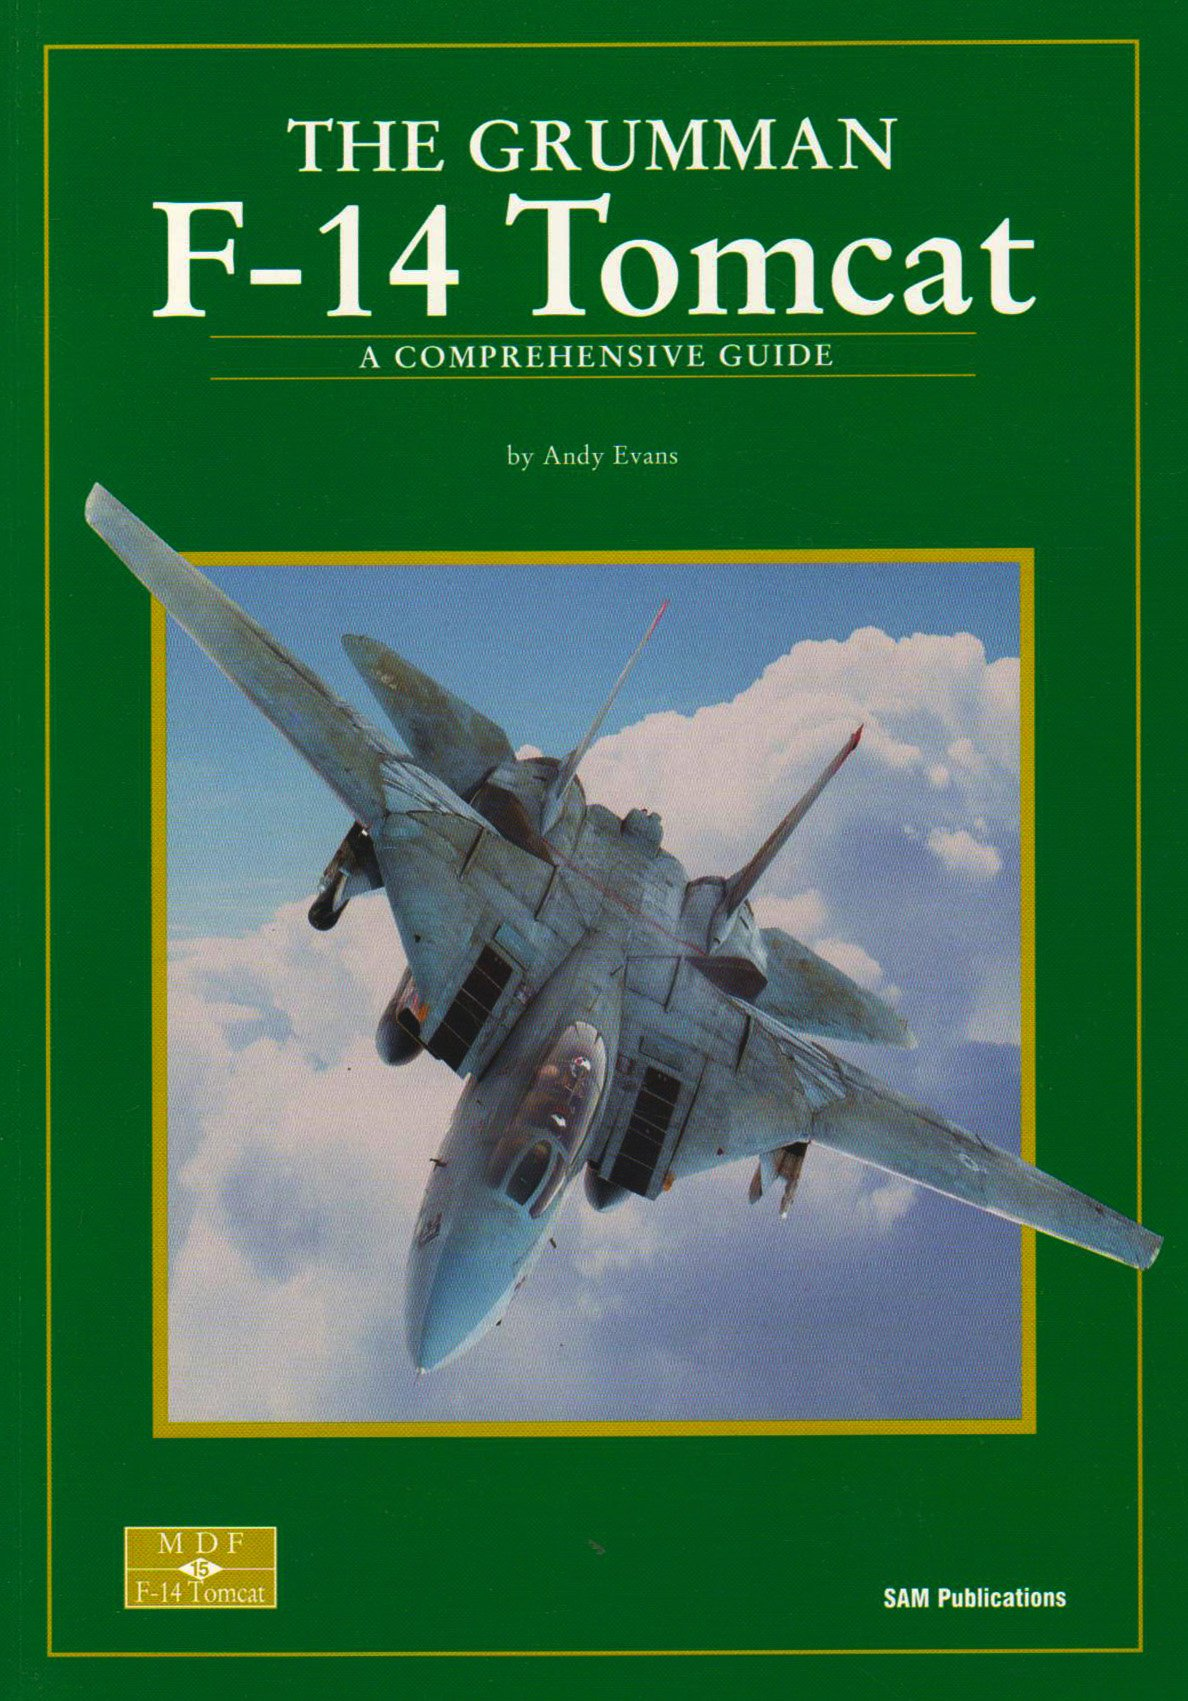 Uncovering The Grumman F-14 Tomcat